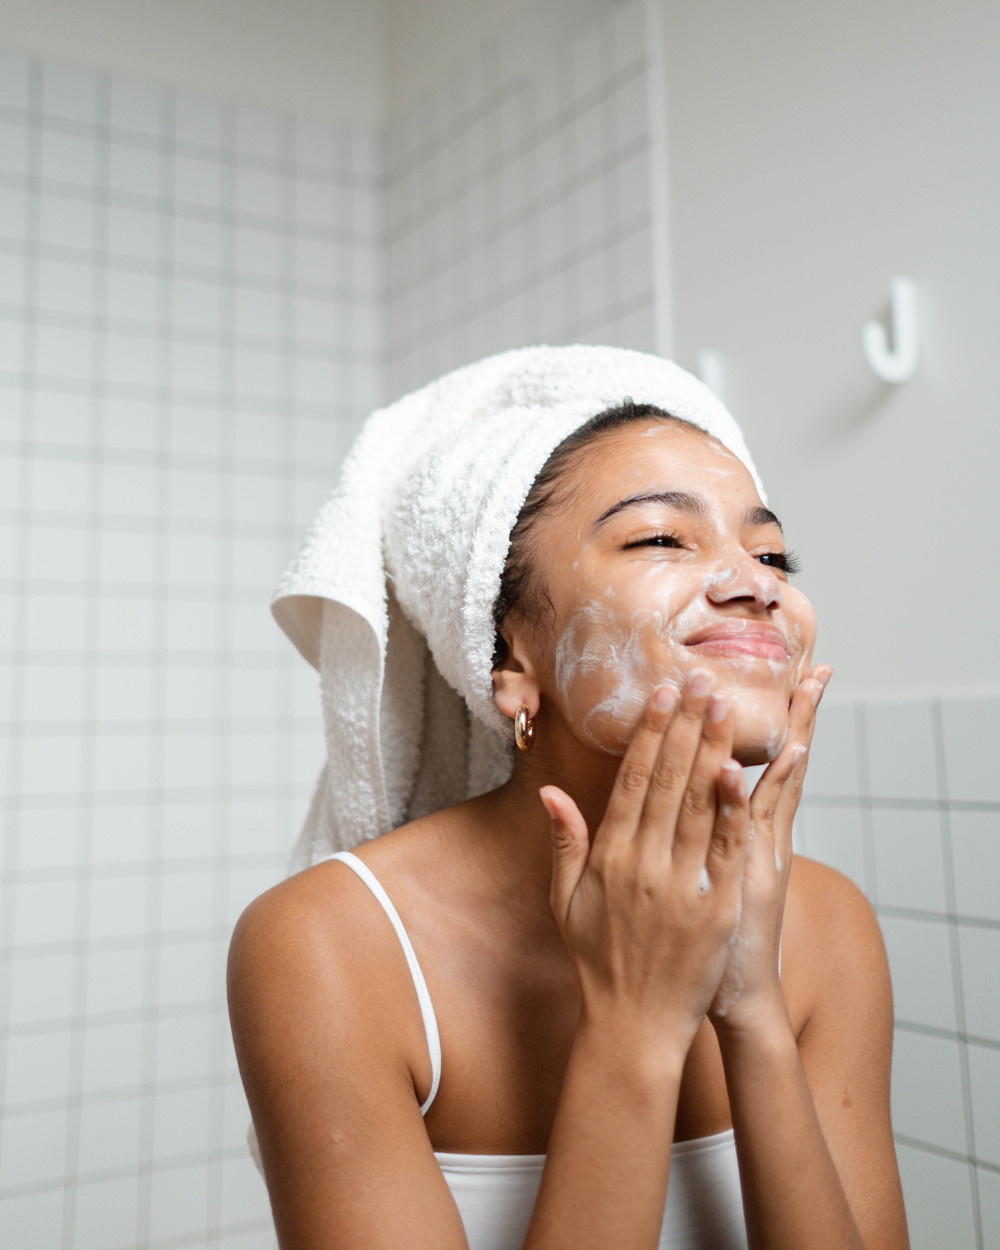 Taking care of your skin